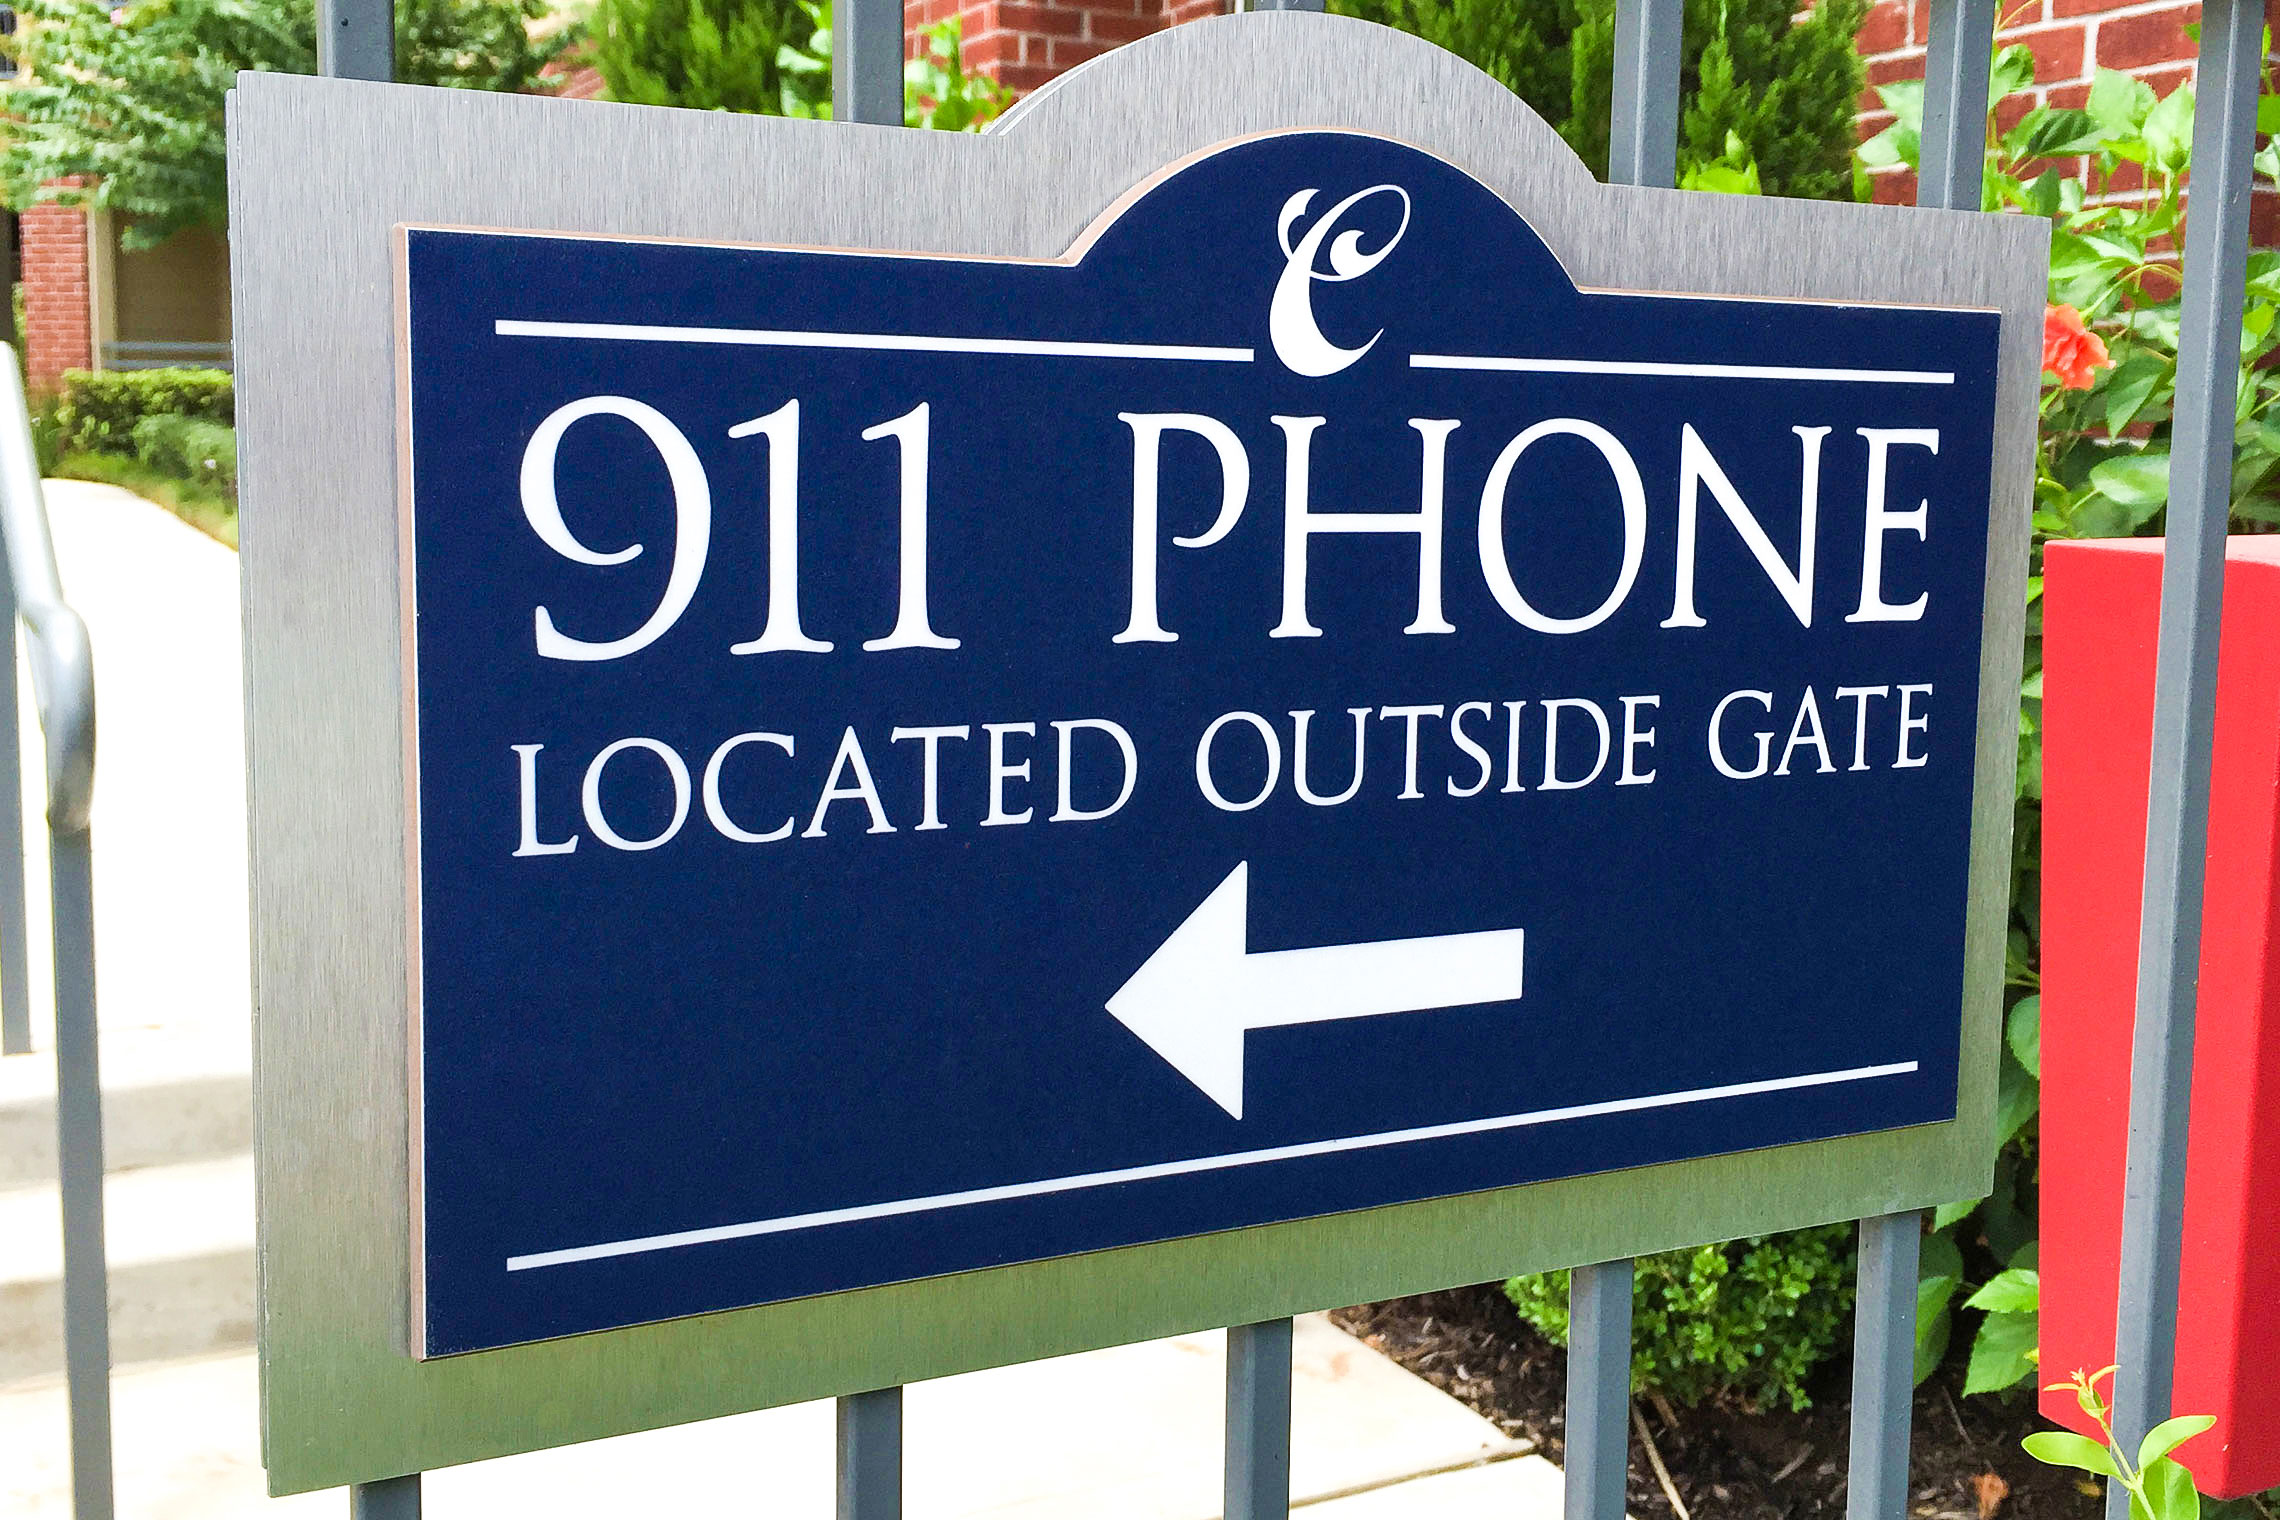 Arium 911 Phone Directional Sign by Pool Gate